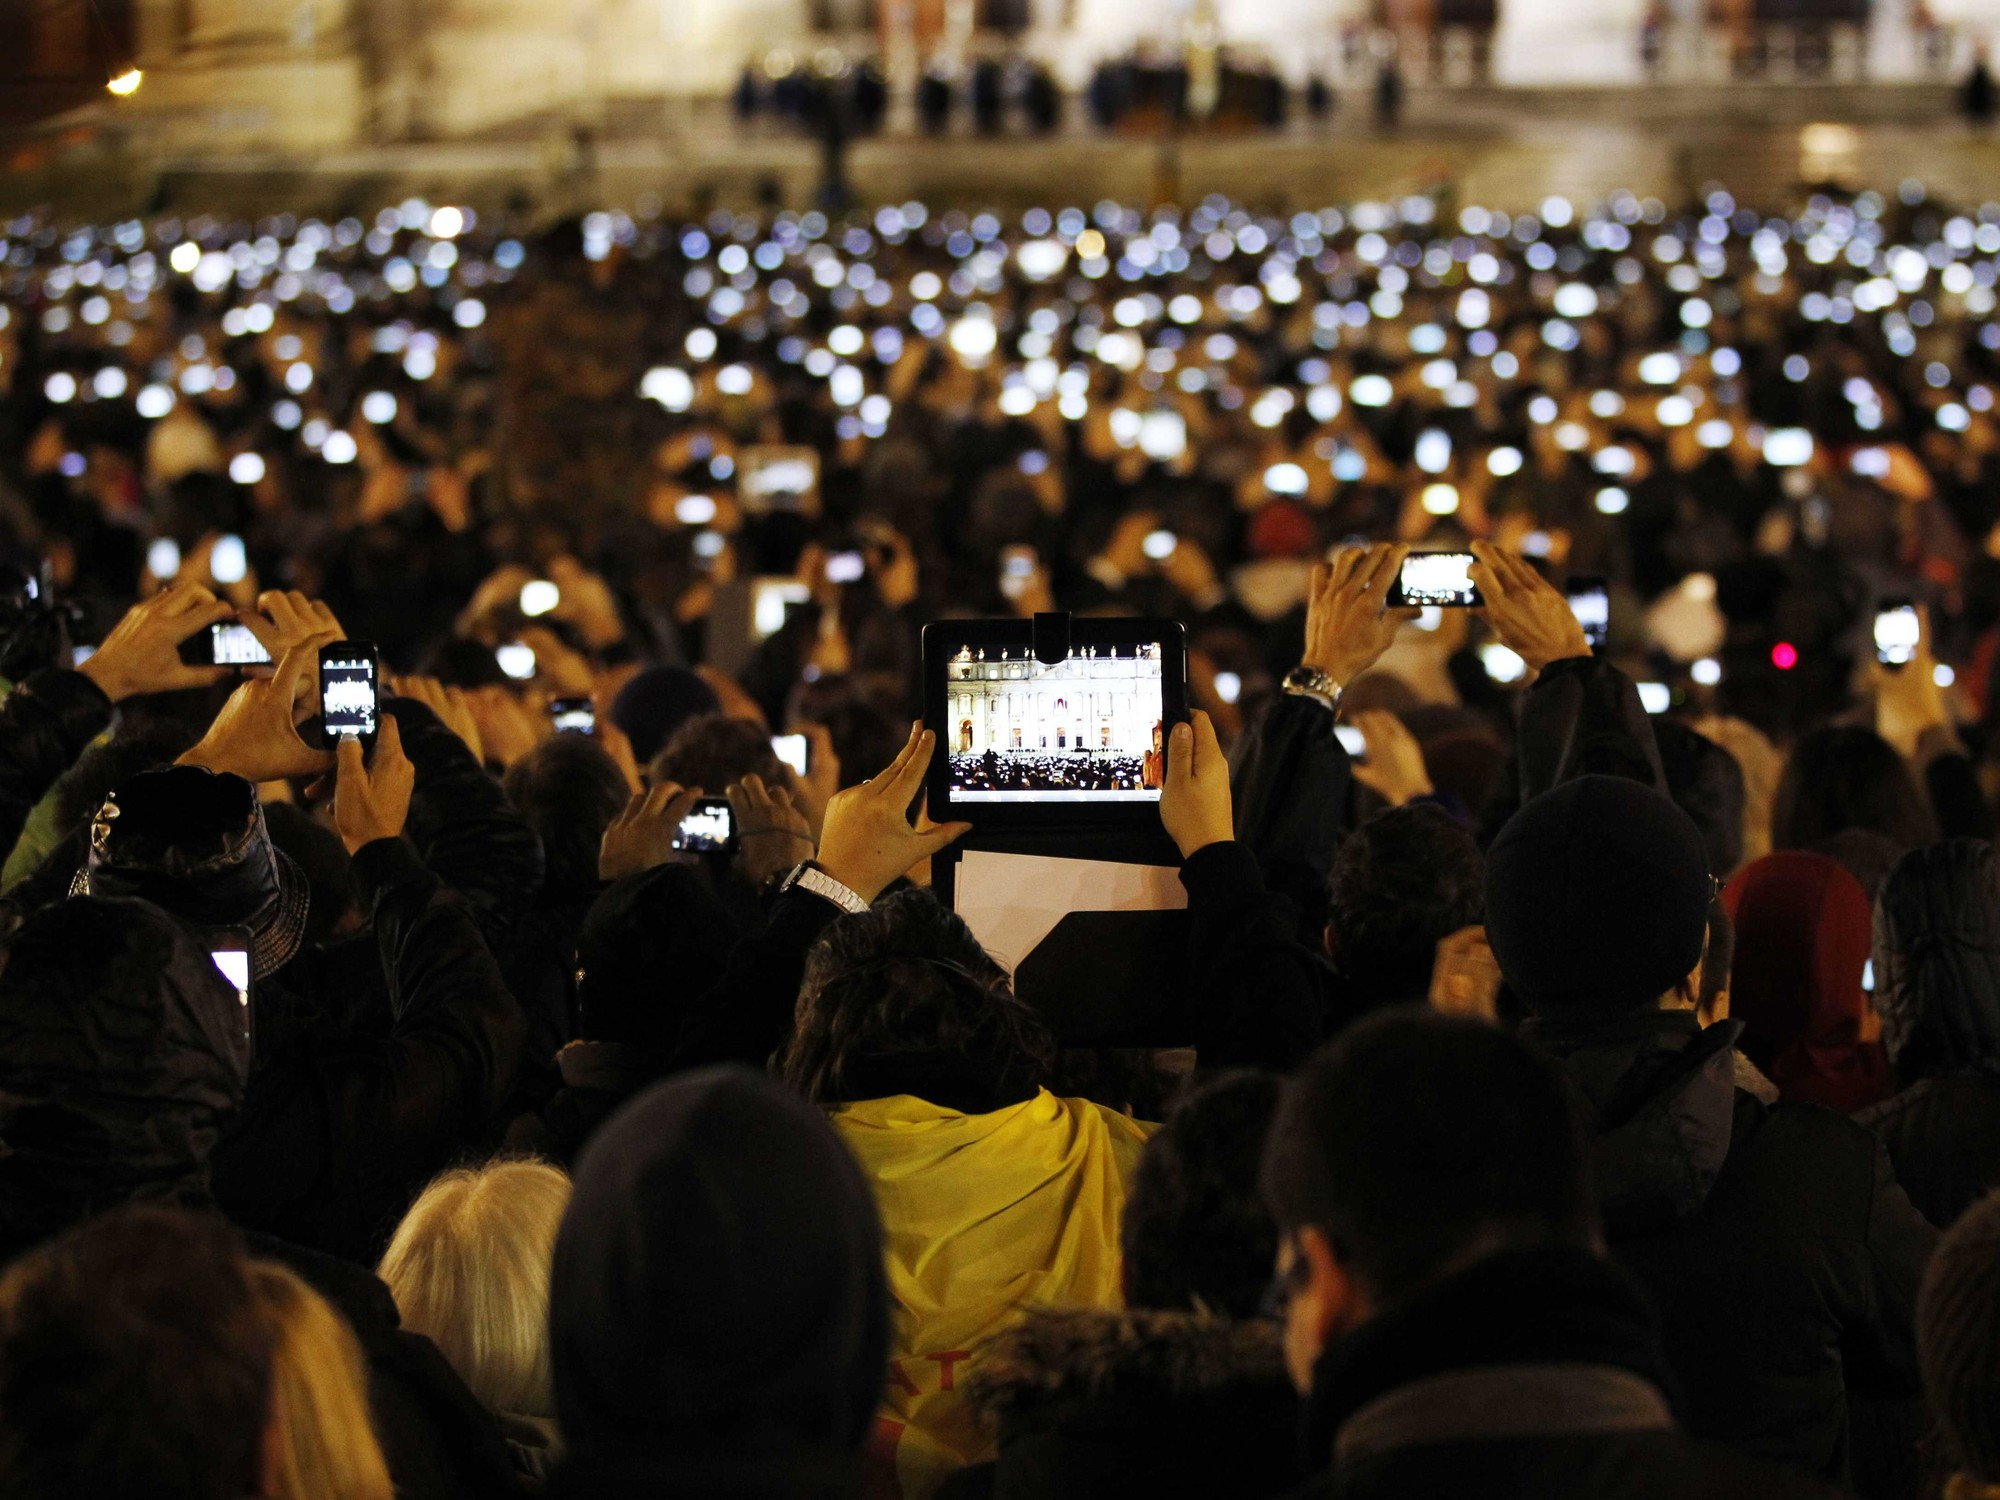 Has Technology Diminished Our Understanding Of Public Space?, St. Peter's Square through the lens of a camera. ImagePapal Conclave 2013, Vatican City